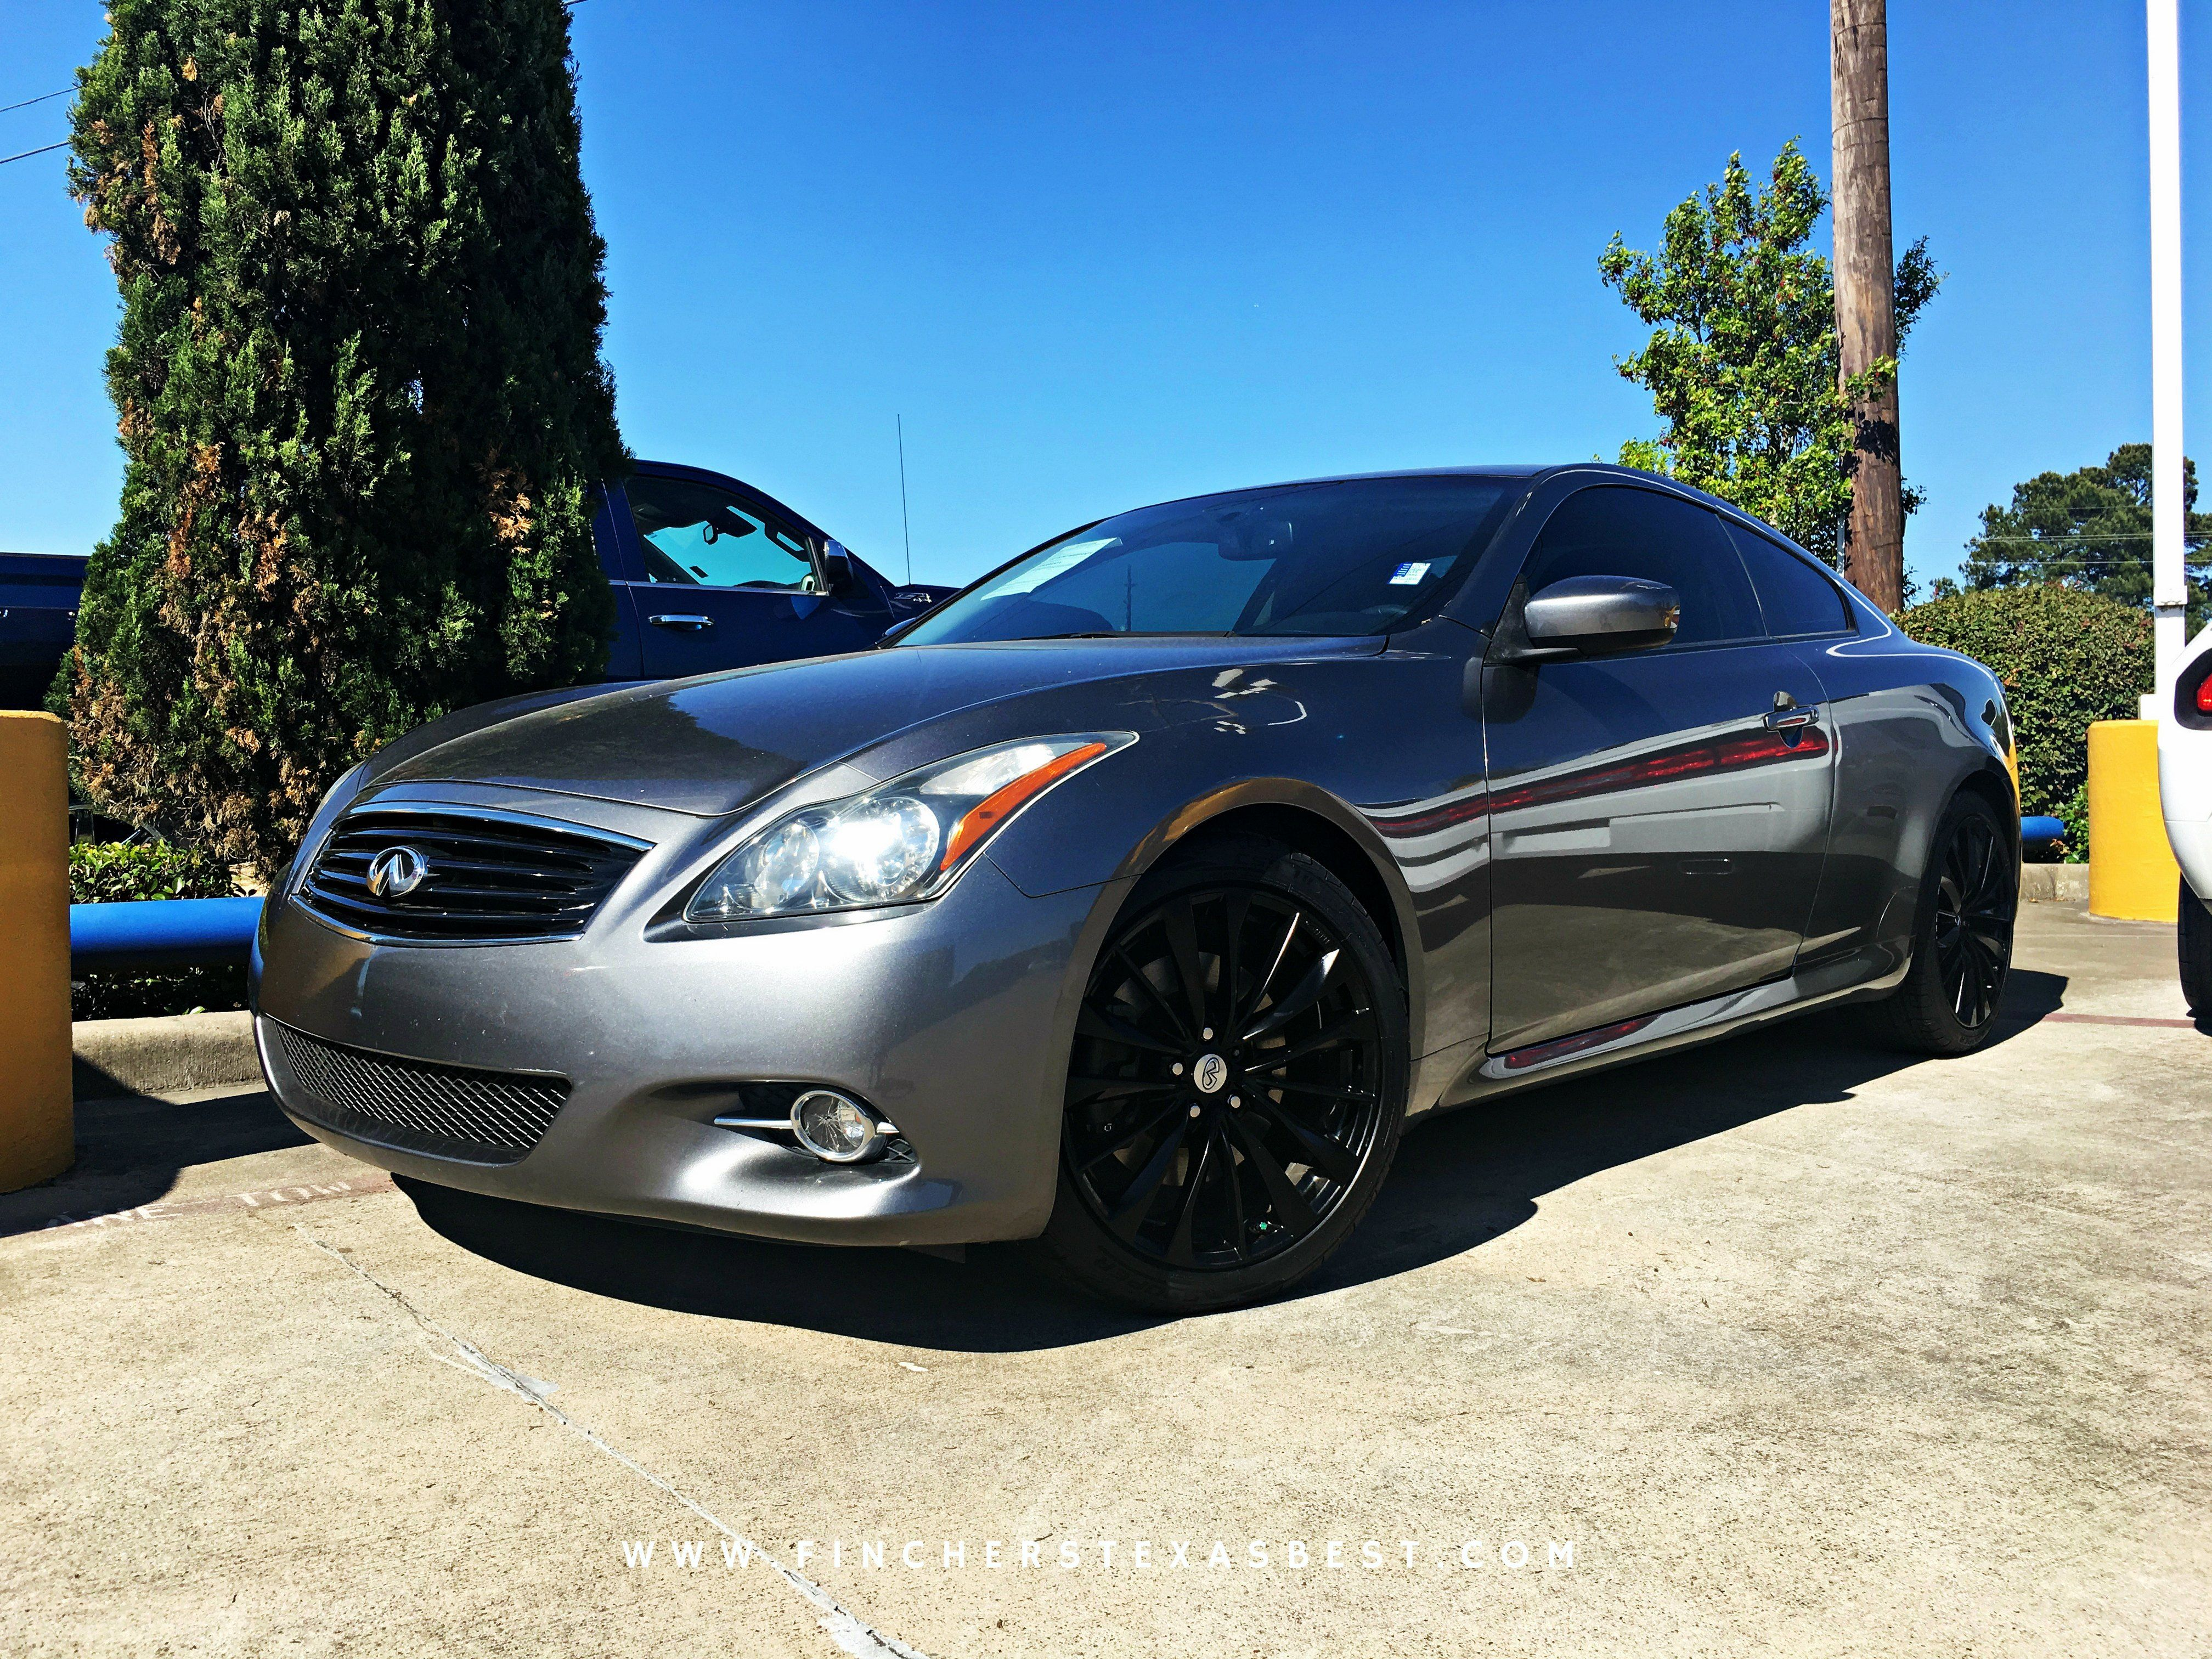 infinity in ad nc for used infiniti usautomobile sale cars cary